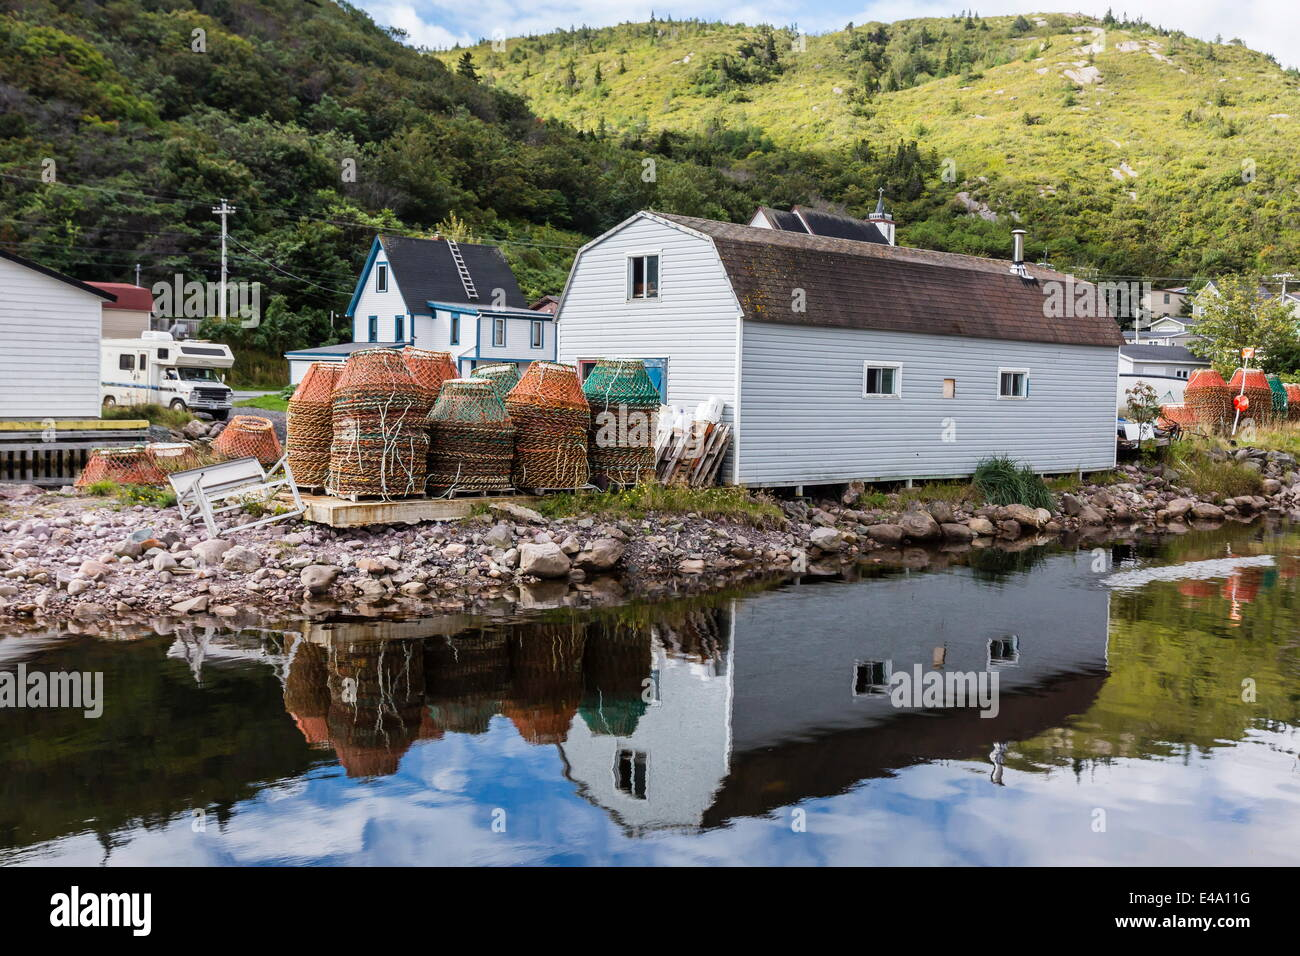 Small harbour with lobster traps outside St. John's, Newfoundland, Canada, North America - Stock Image